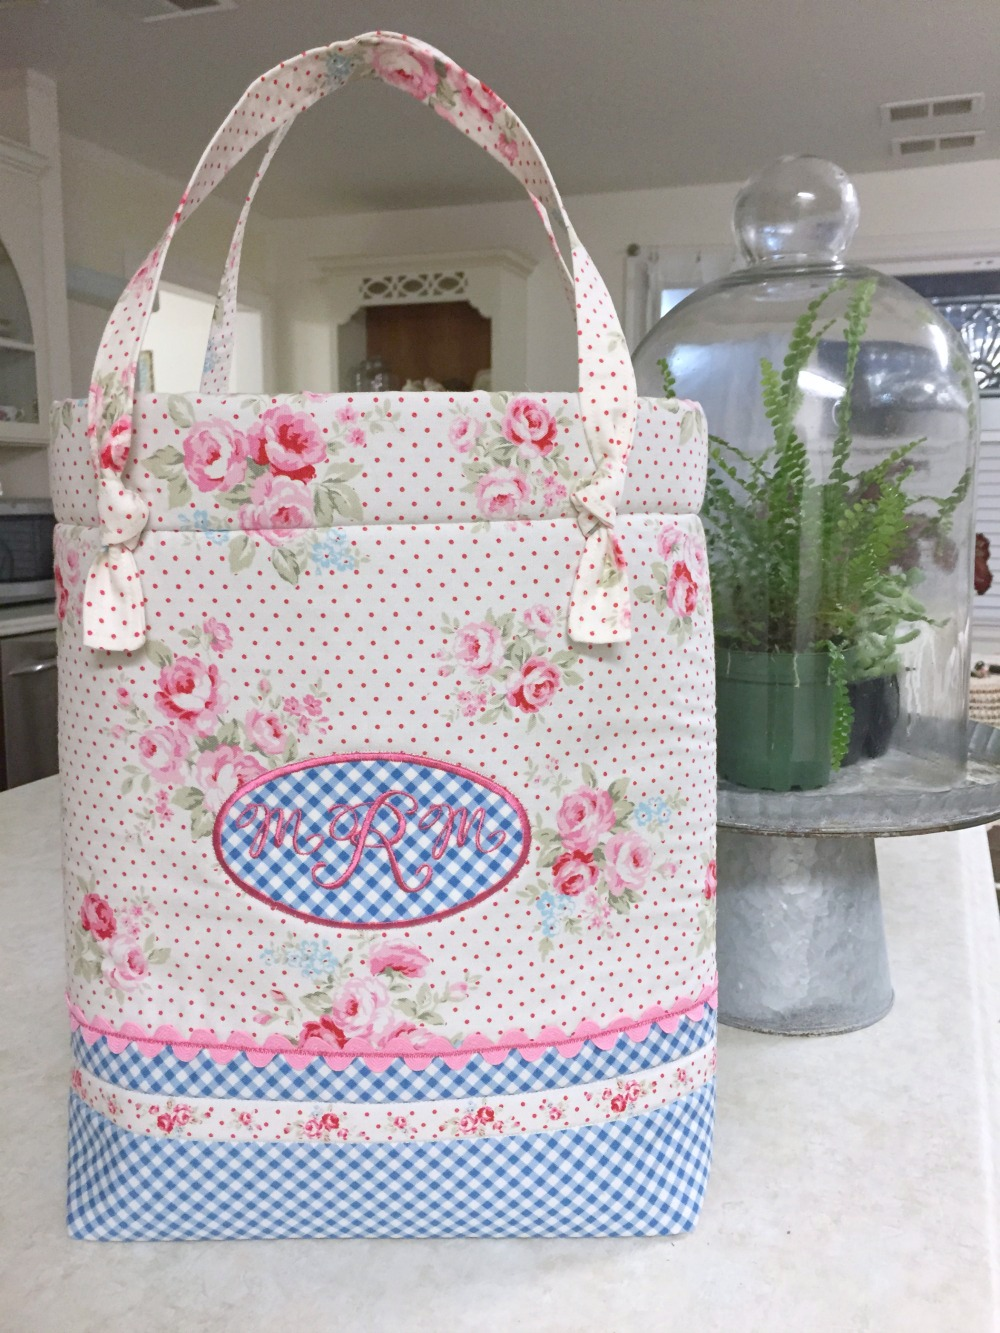 The Perfect Whatever Bag by Maxie Makes and Bonnie Christine